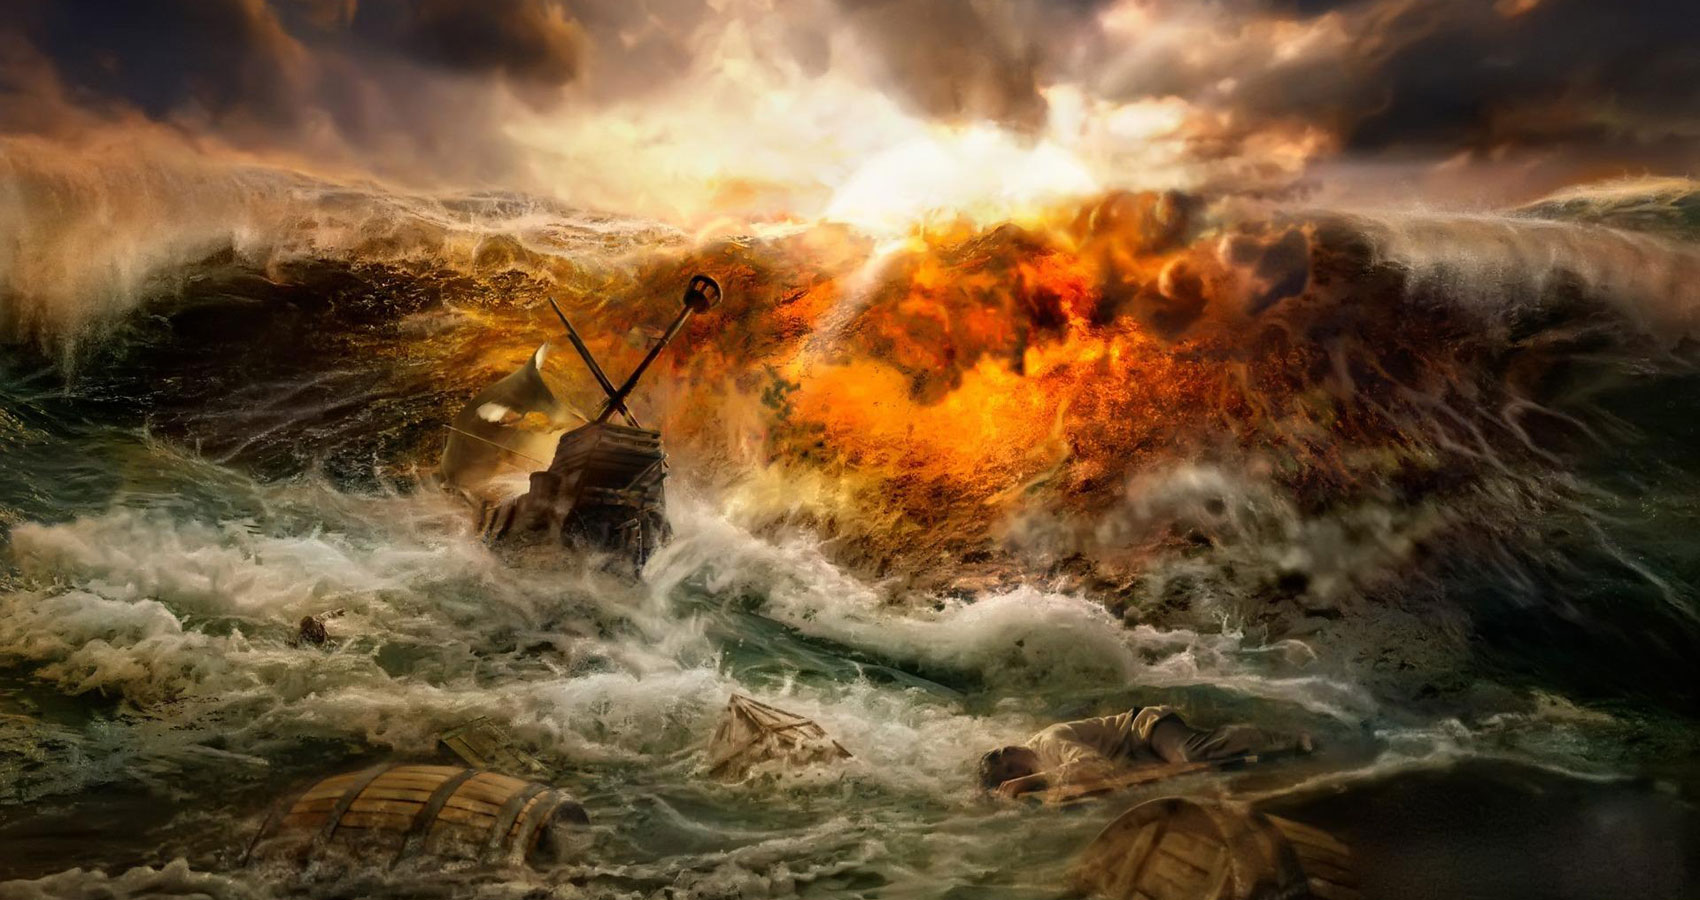 The Song Of The Wreck by Charles Dickens at Spillwords.com